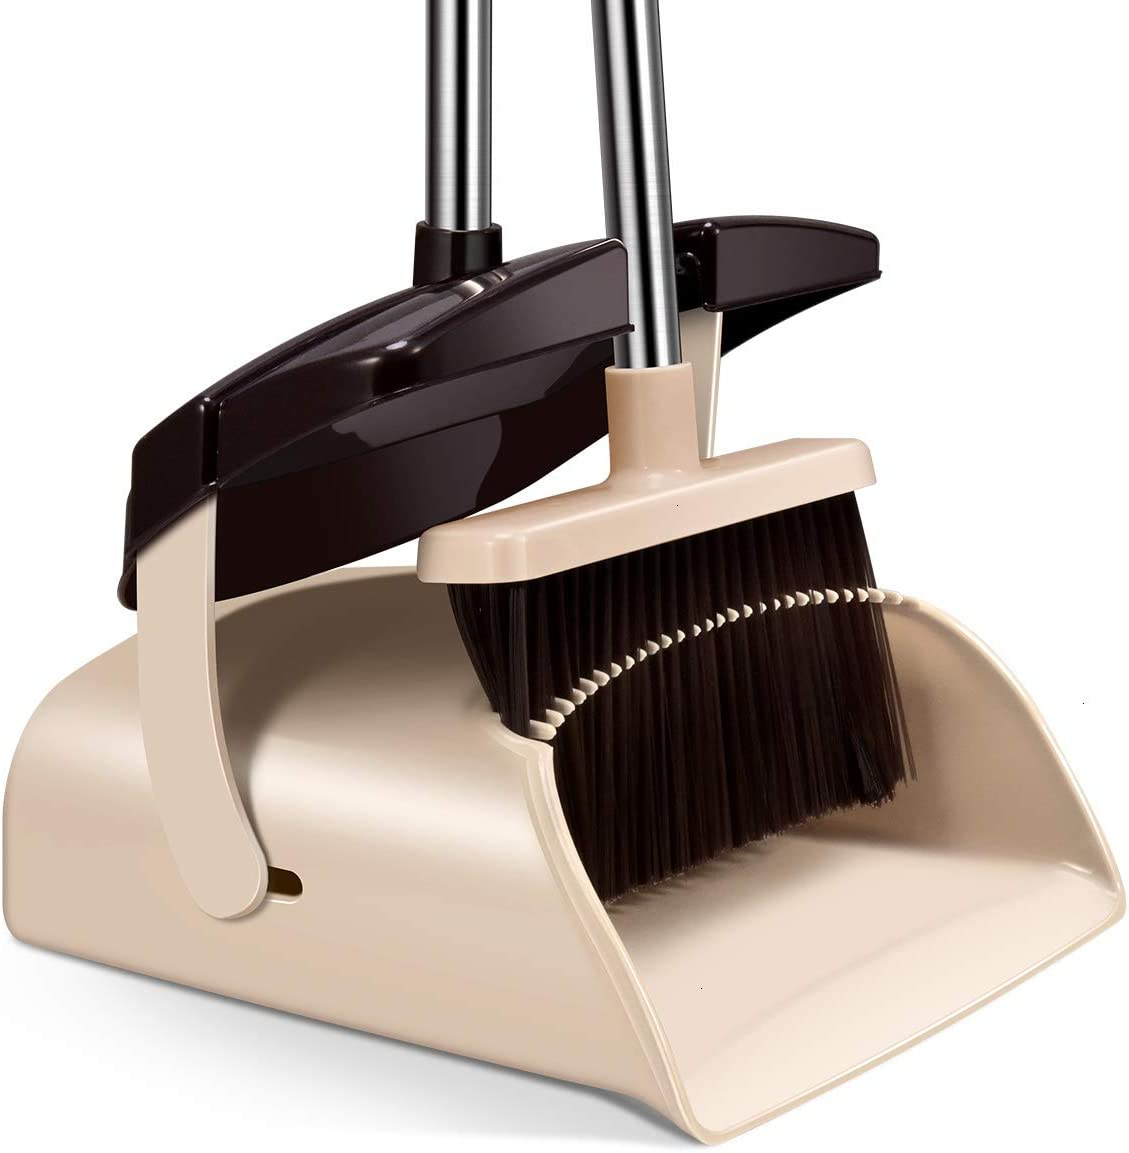 Mosuch Broom/Dustpan Cleans Broom for Home Kitchen Room Office Lobby Floor Use Upright Stand Up Broom and Dustpan Set